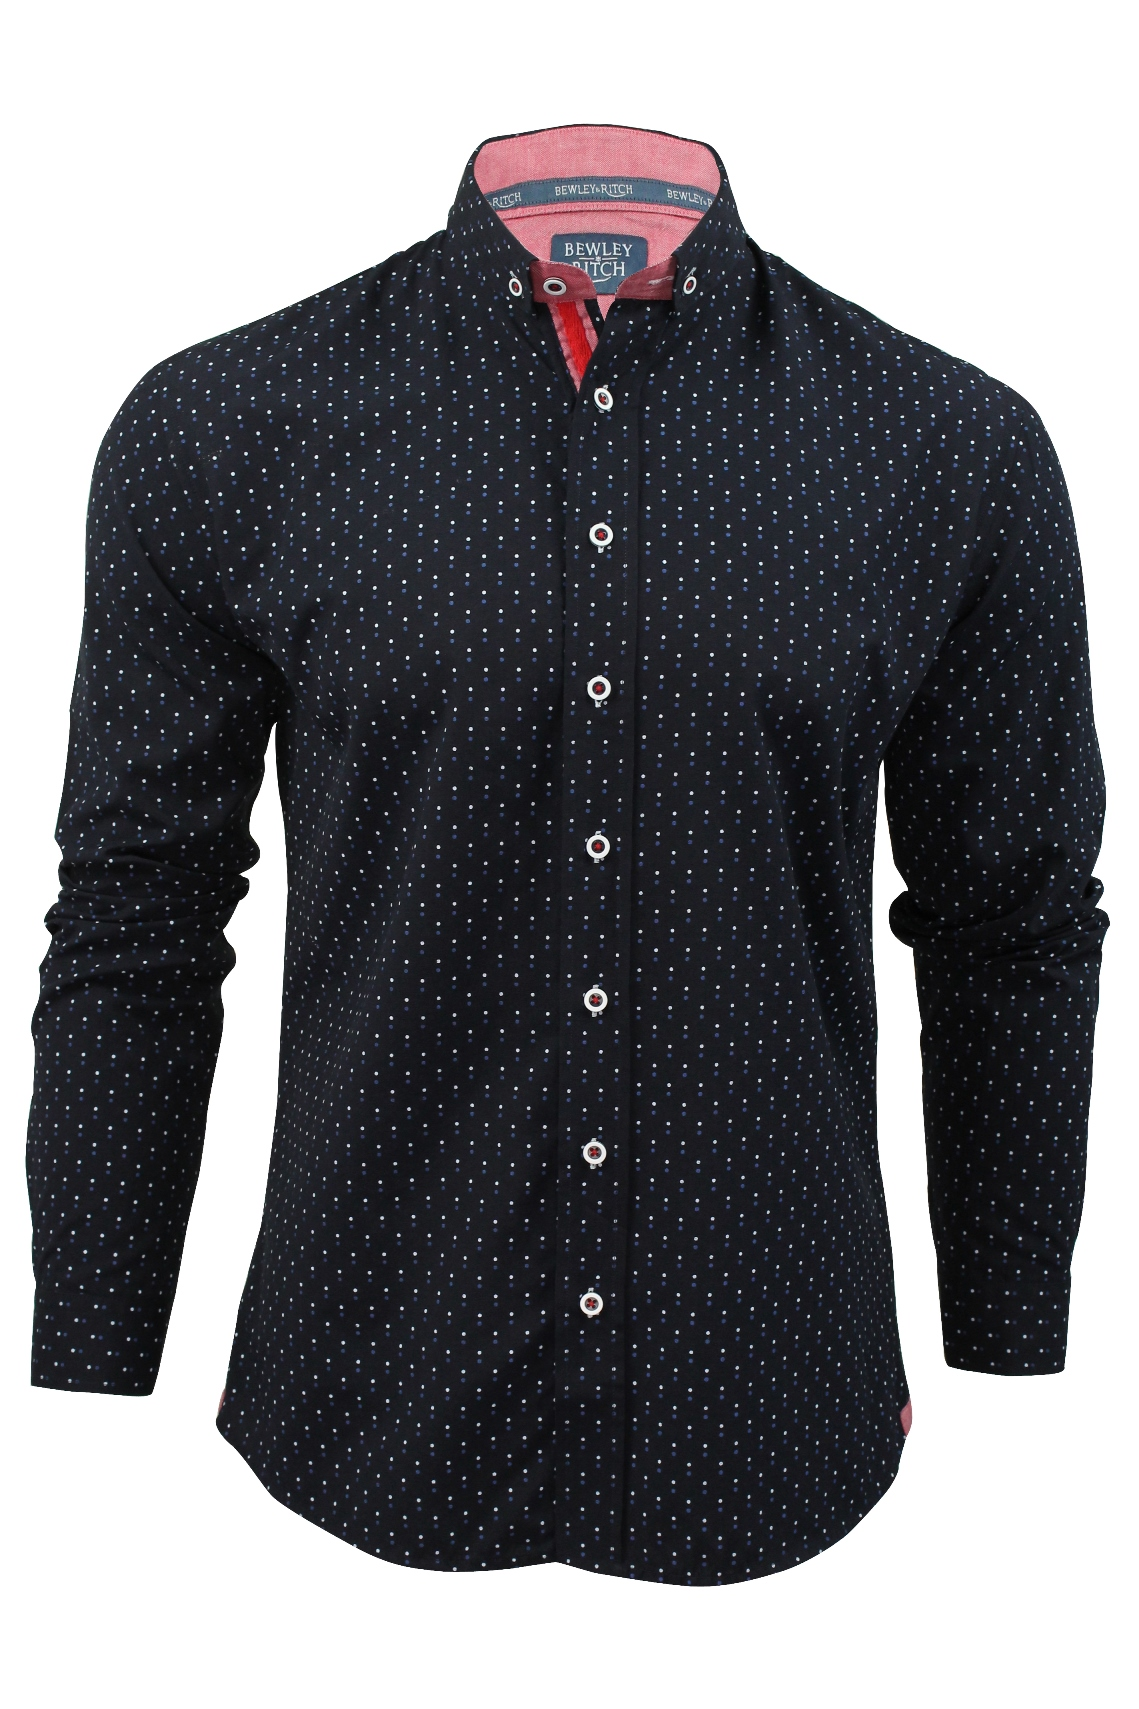 Mens shirt by bewley ritch 39 merick 39 polka dot long for Mens polka dot shirt short sleeve